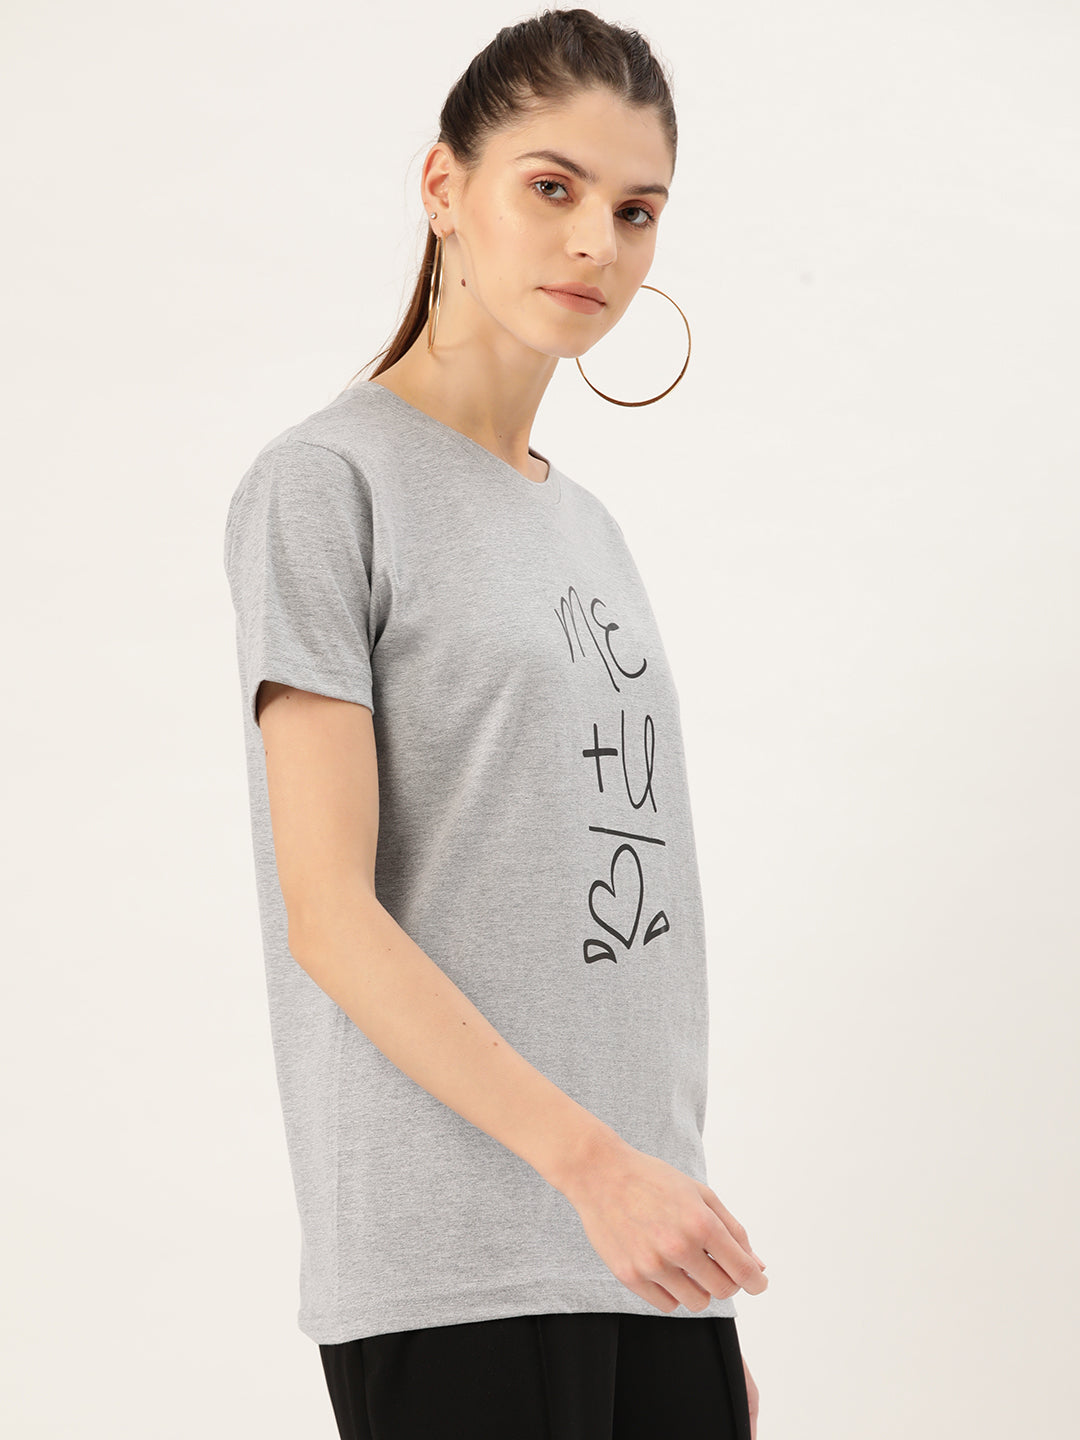 Me and U is Love Women Grey T-Shirt - YOLOCLAN